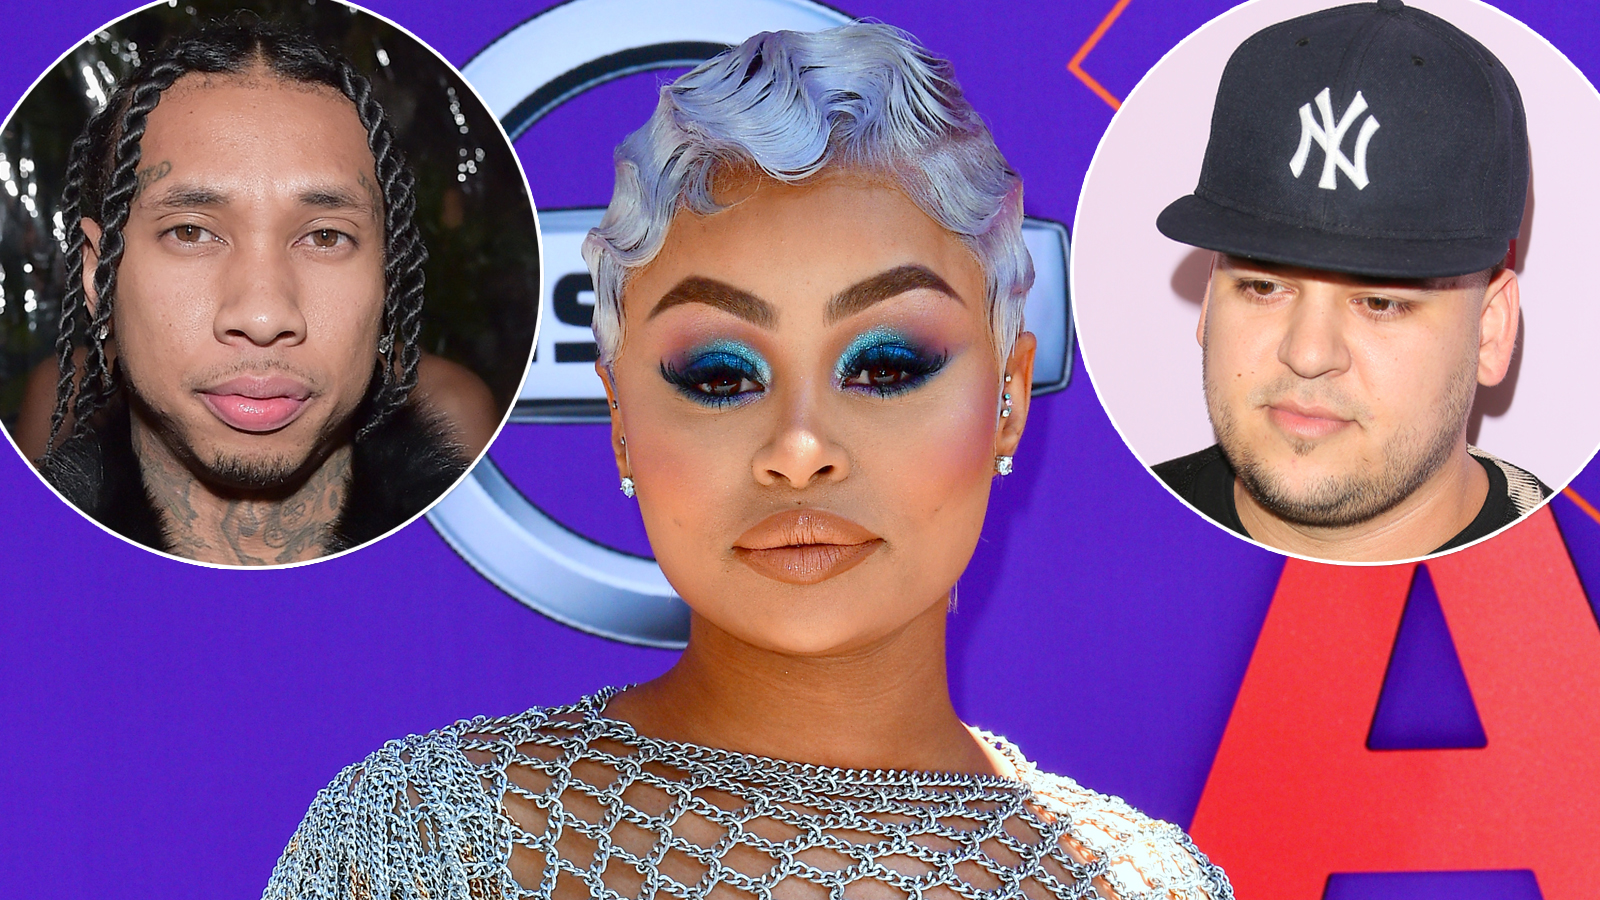 Blac Chyna Calls Out Rob Kardashian and Tyga Over Child Support: 'It Was Never About That, Period'